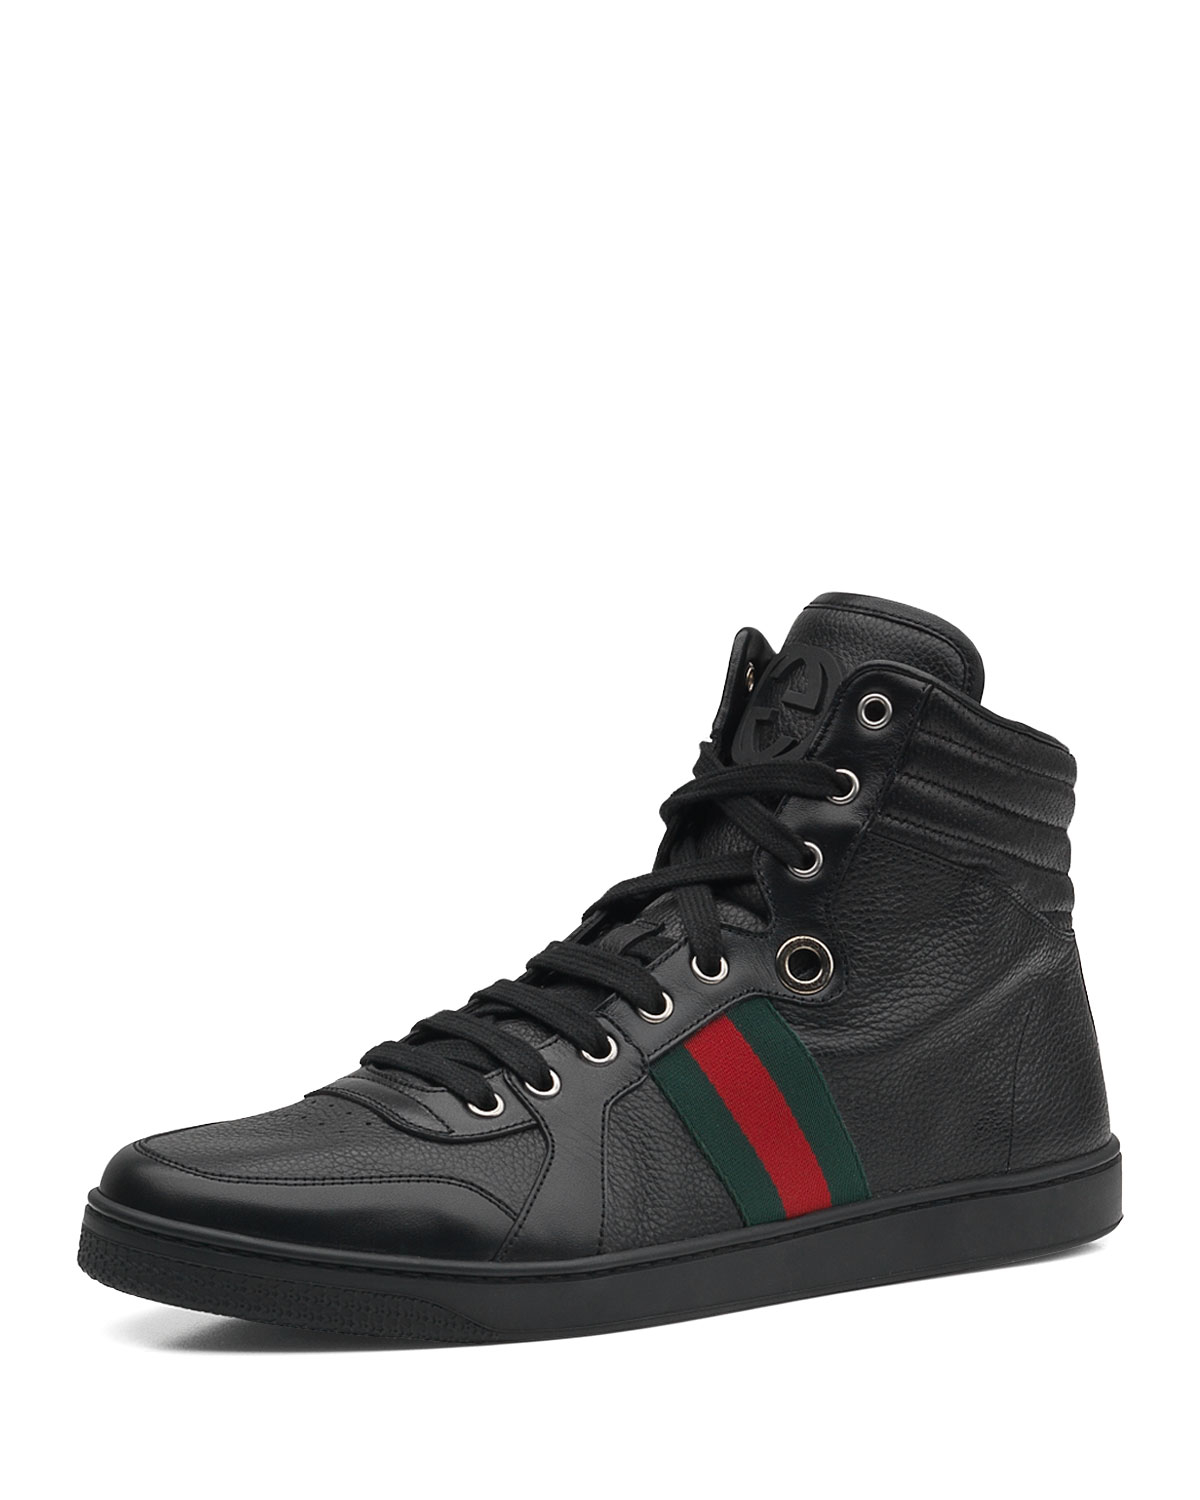 Black Leather Sports Shoe